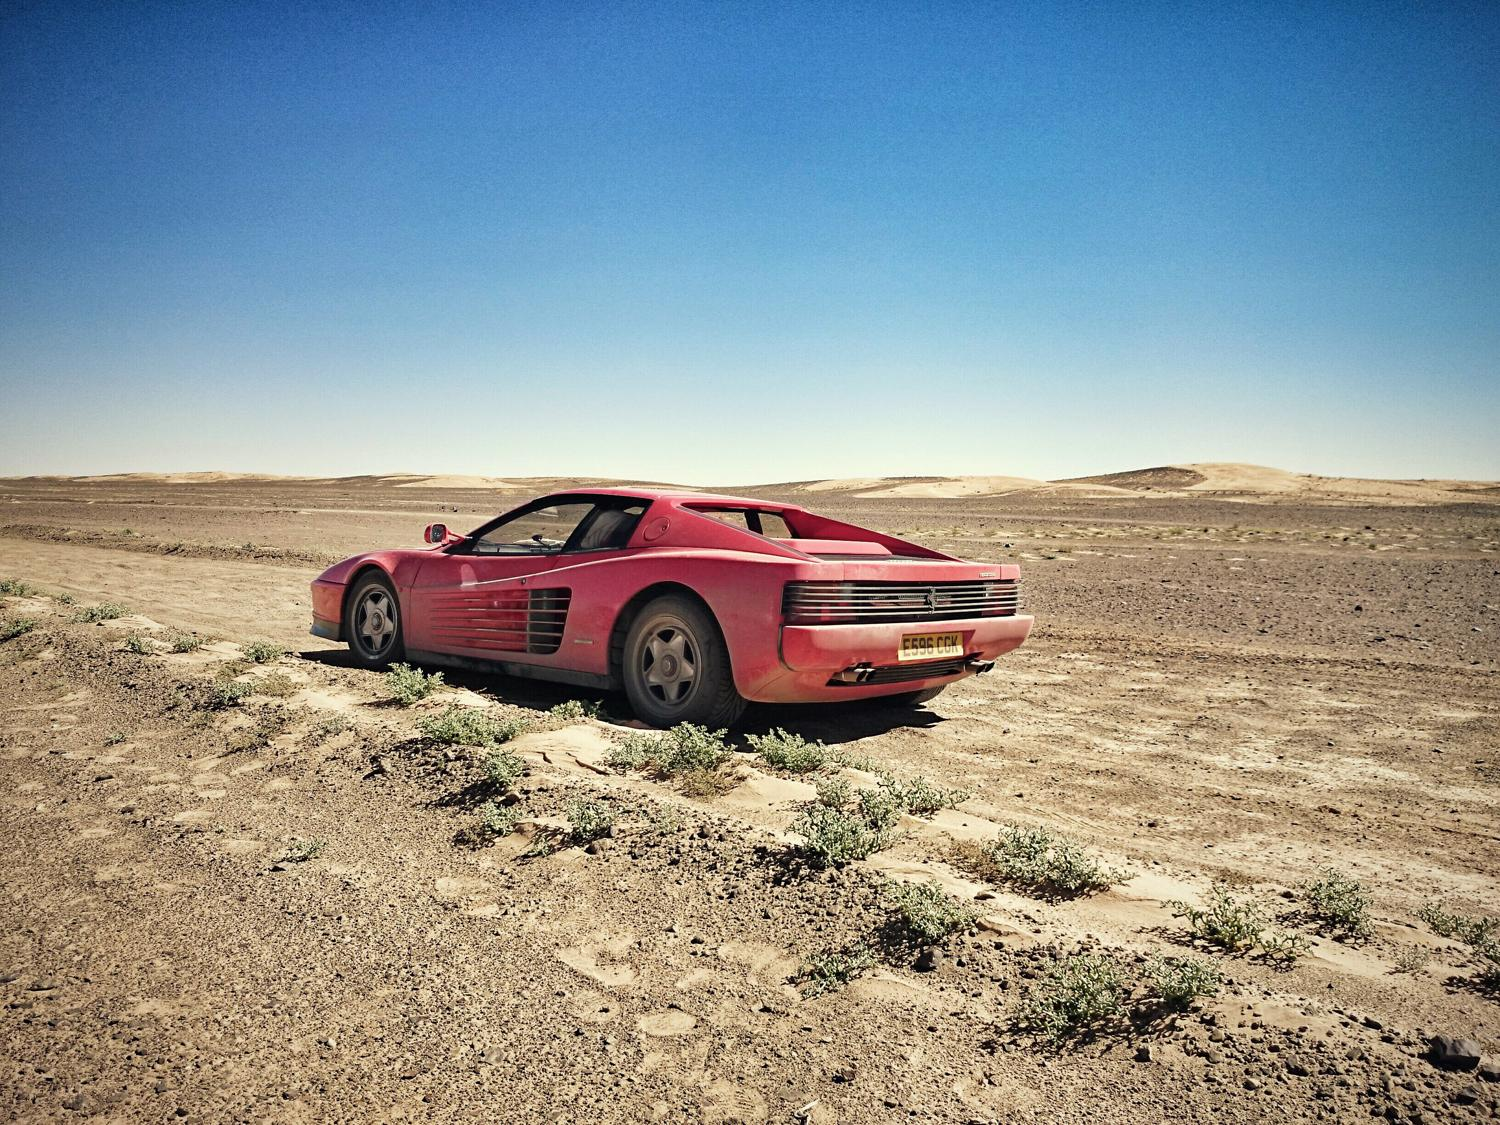 Spotted this @harrym_evo Testarossa in Morocco a couple of months back… Great feature in latest @octane_magazine http://t.co/eu0Q4T8FW0